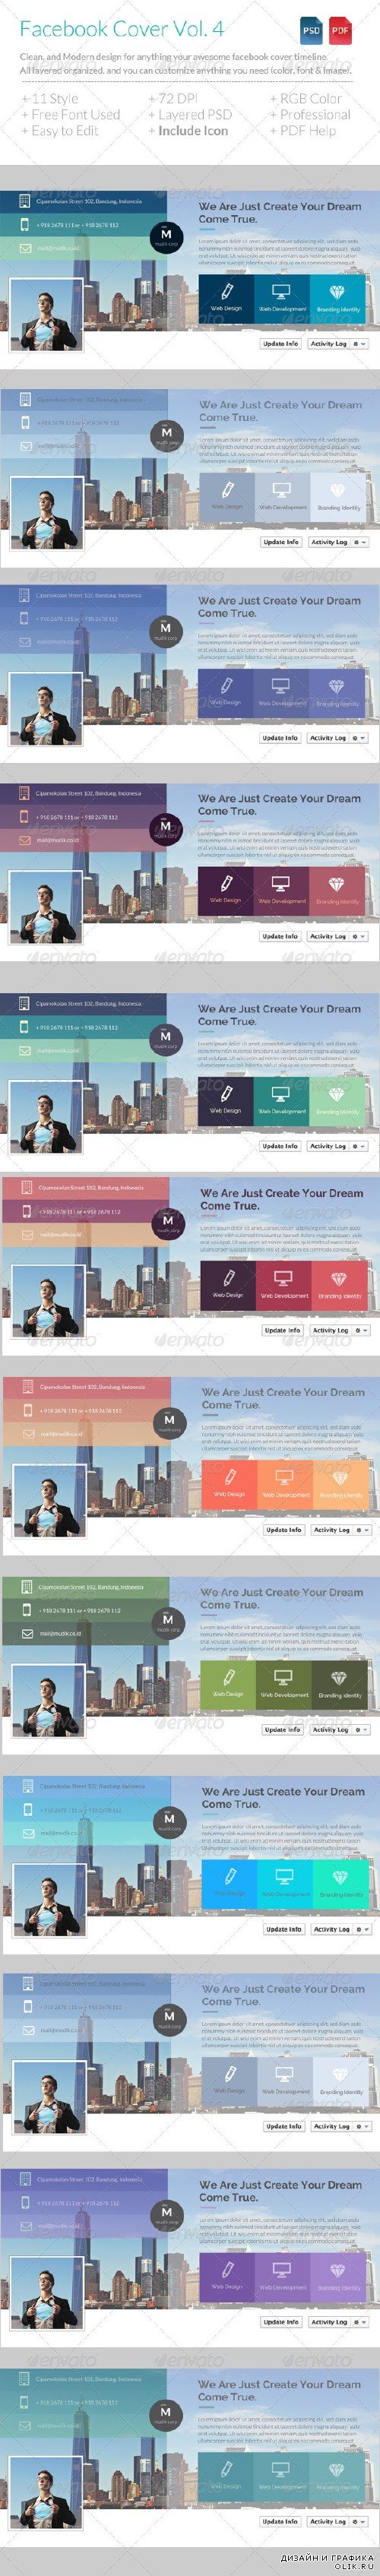 GraphicRiver Flat Corporate Facebook Timeline Vol. 2 7252454